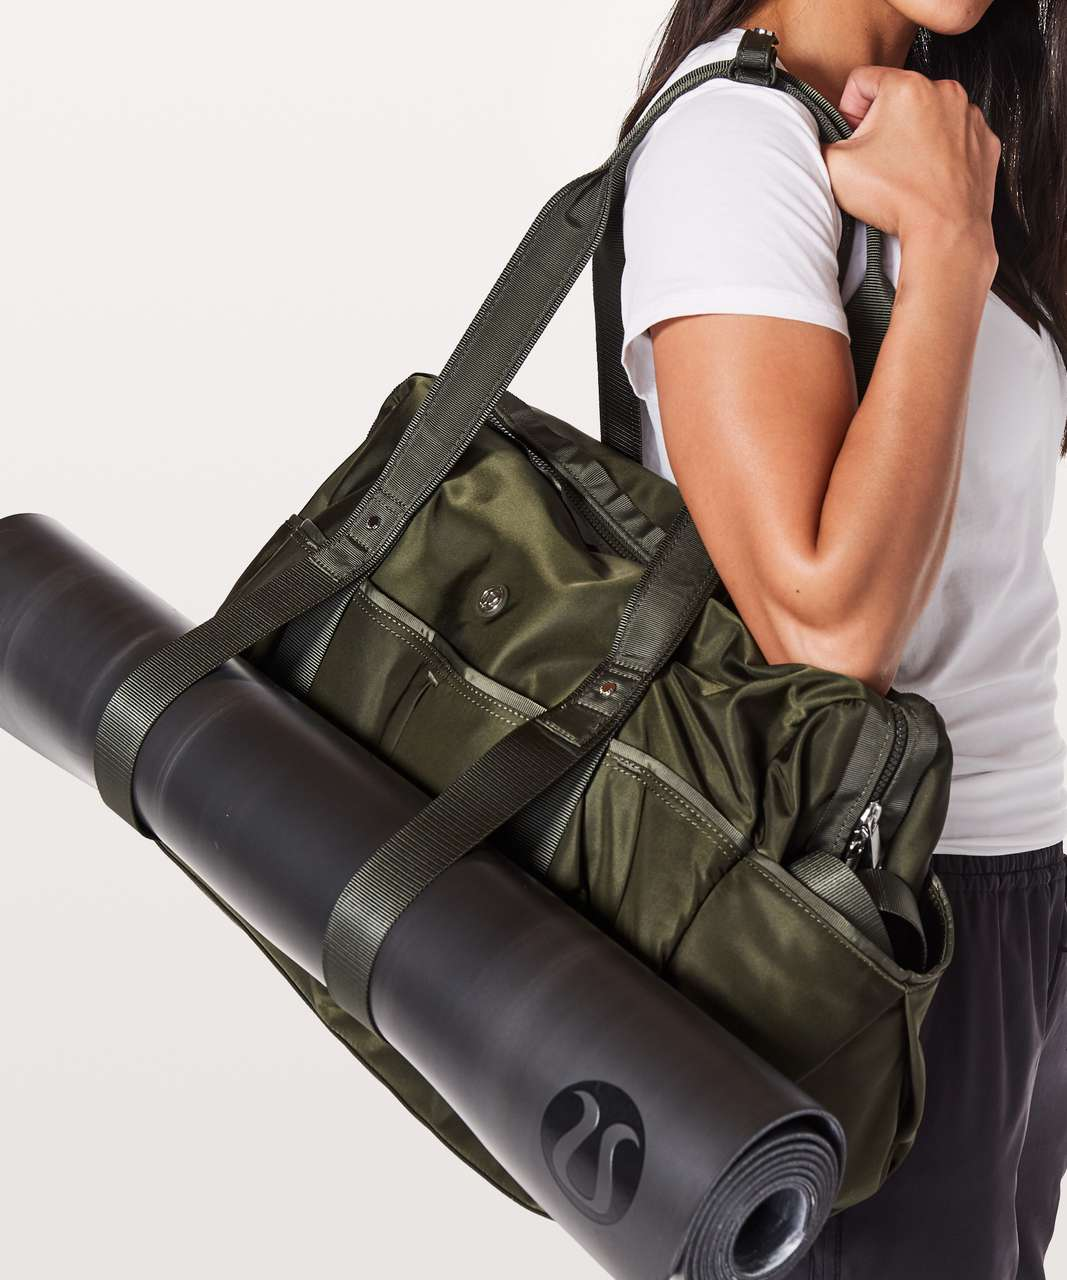 Lululemon All Day Duffel *Heatproof Pocket 31L - Dark Olive